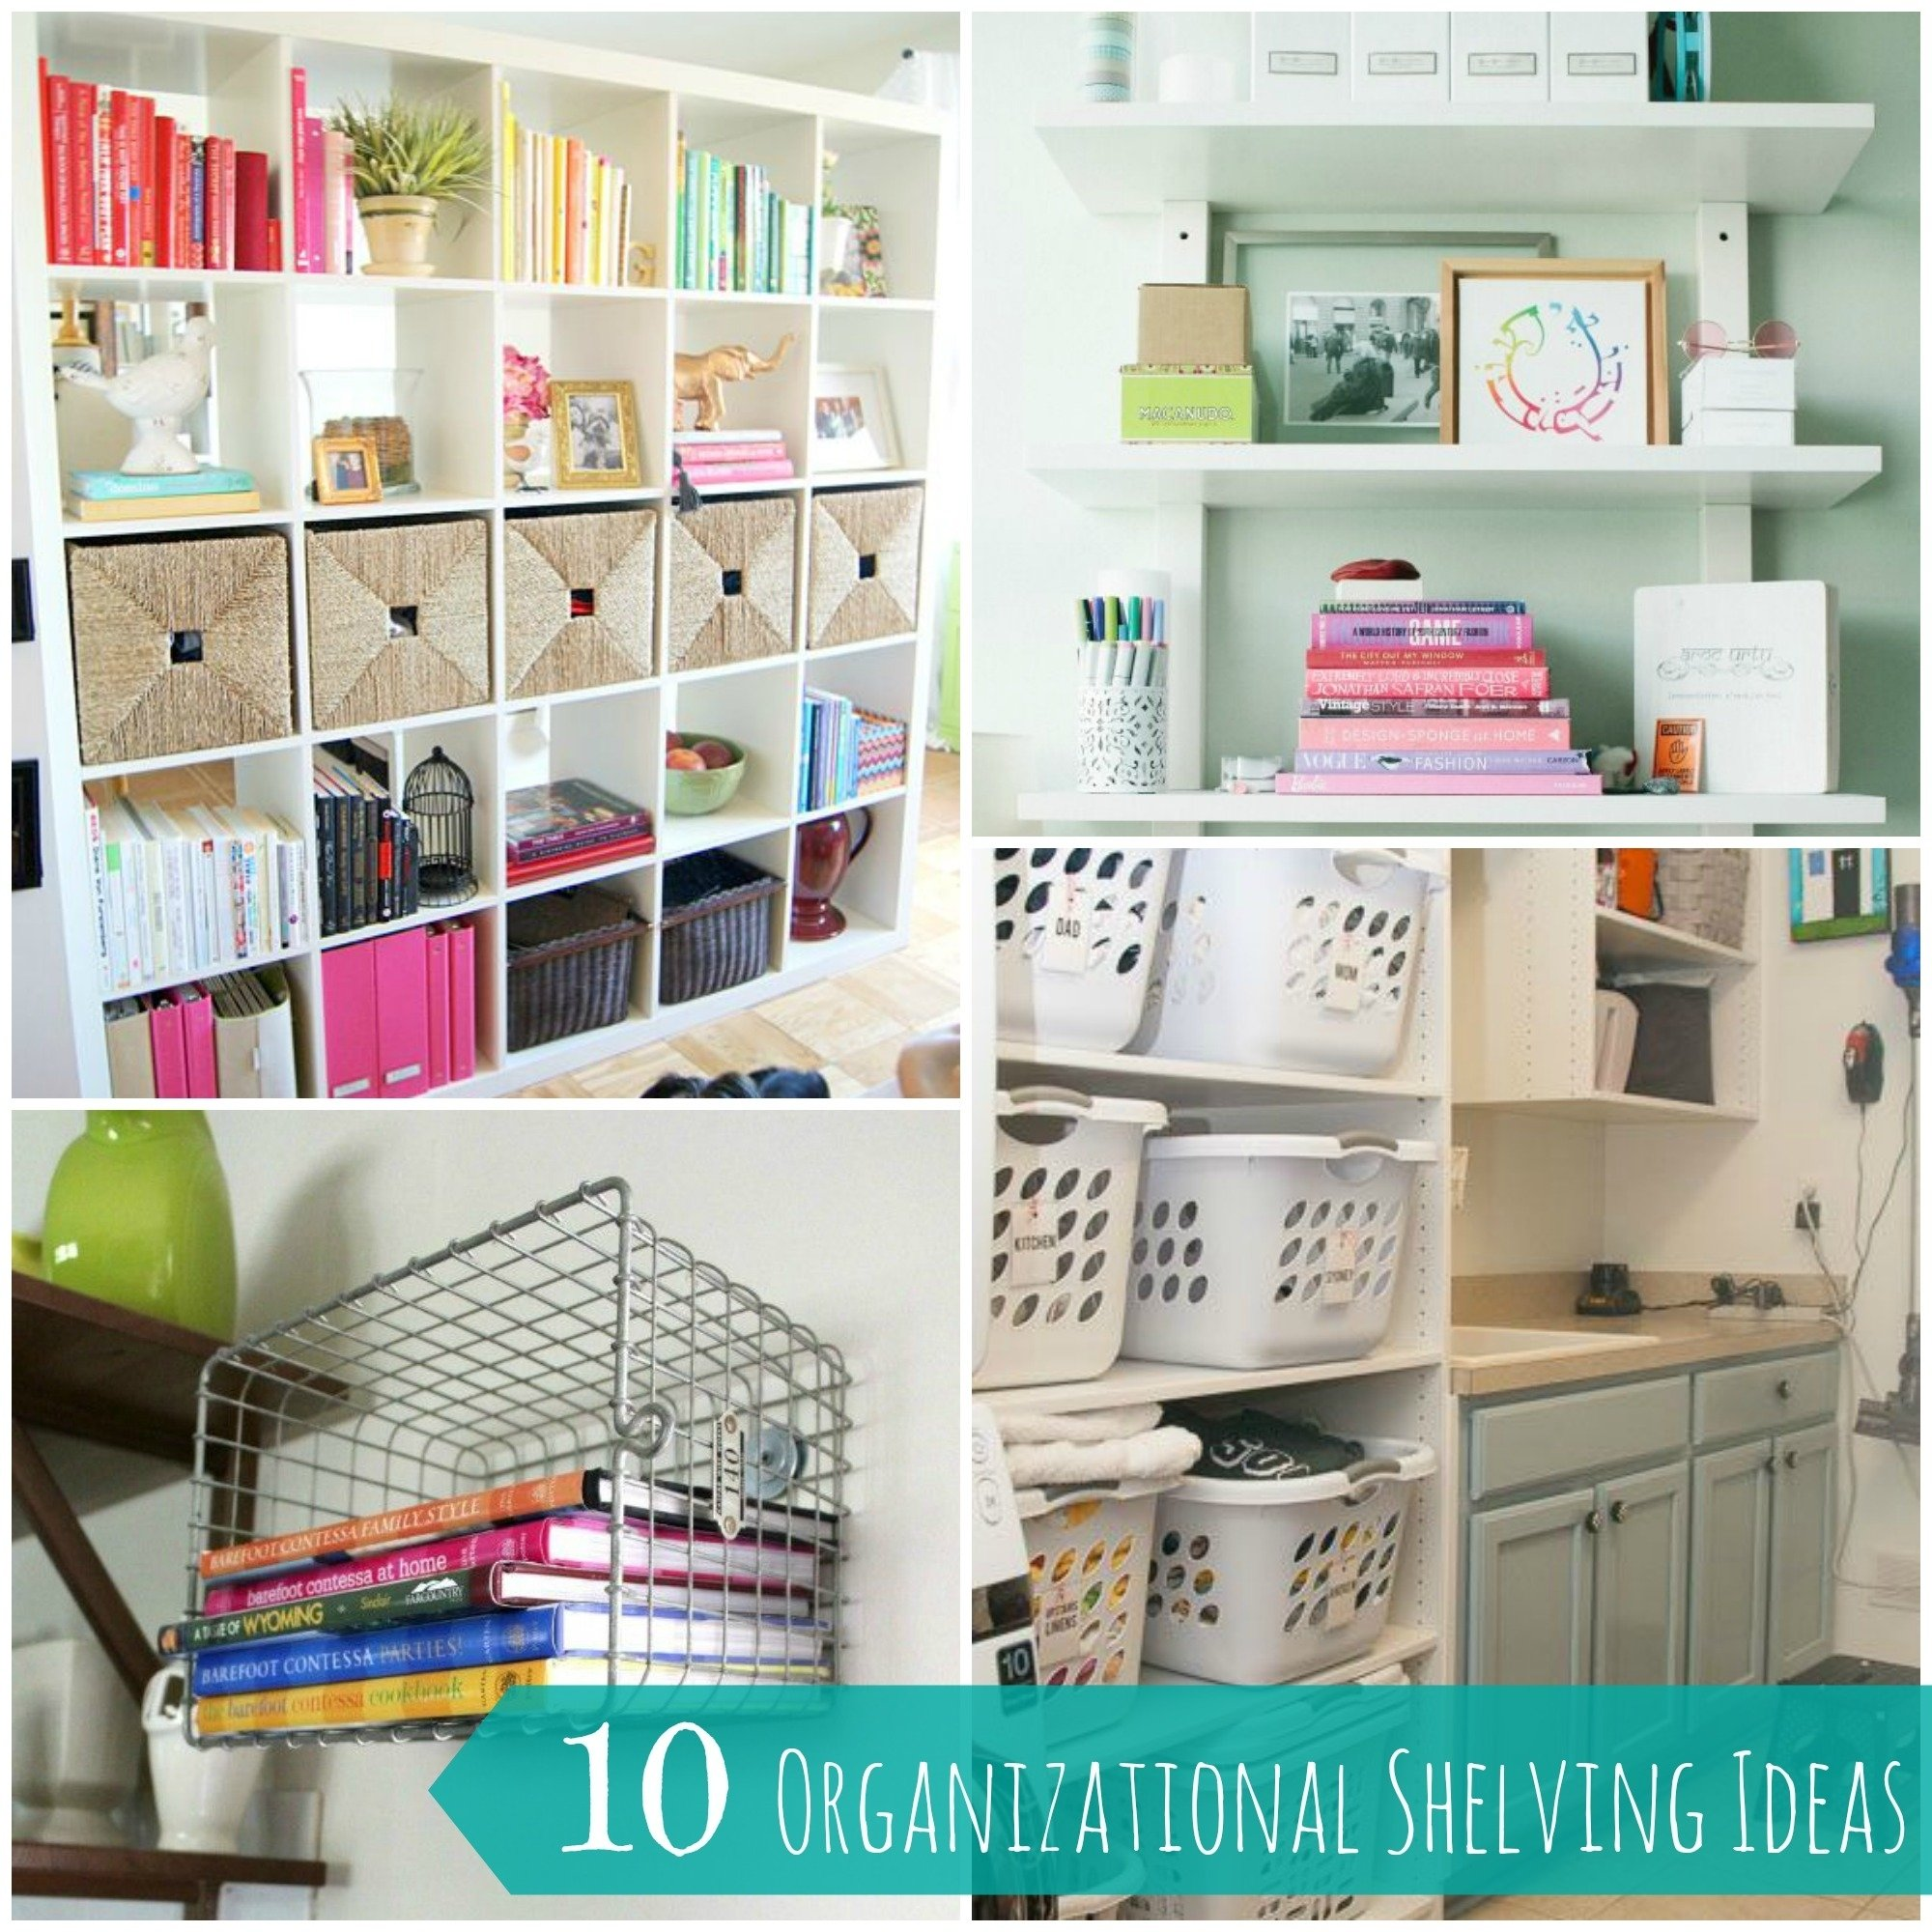 10 Most Popular Home Organization Tips And Ideas 10 easy and creative shelving organization ideas for your home 2020